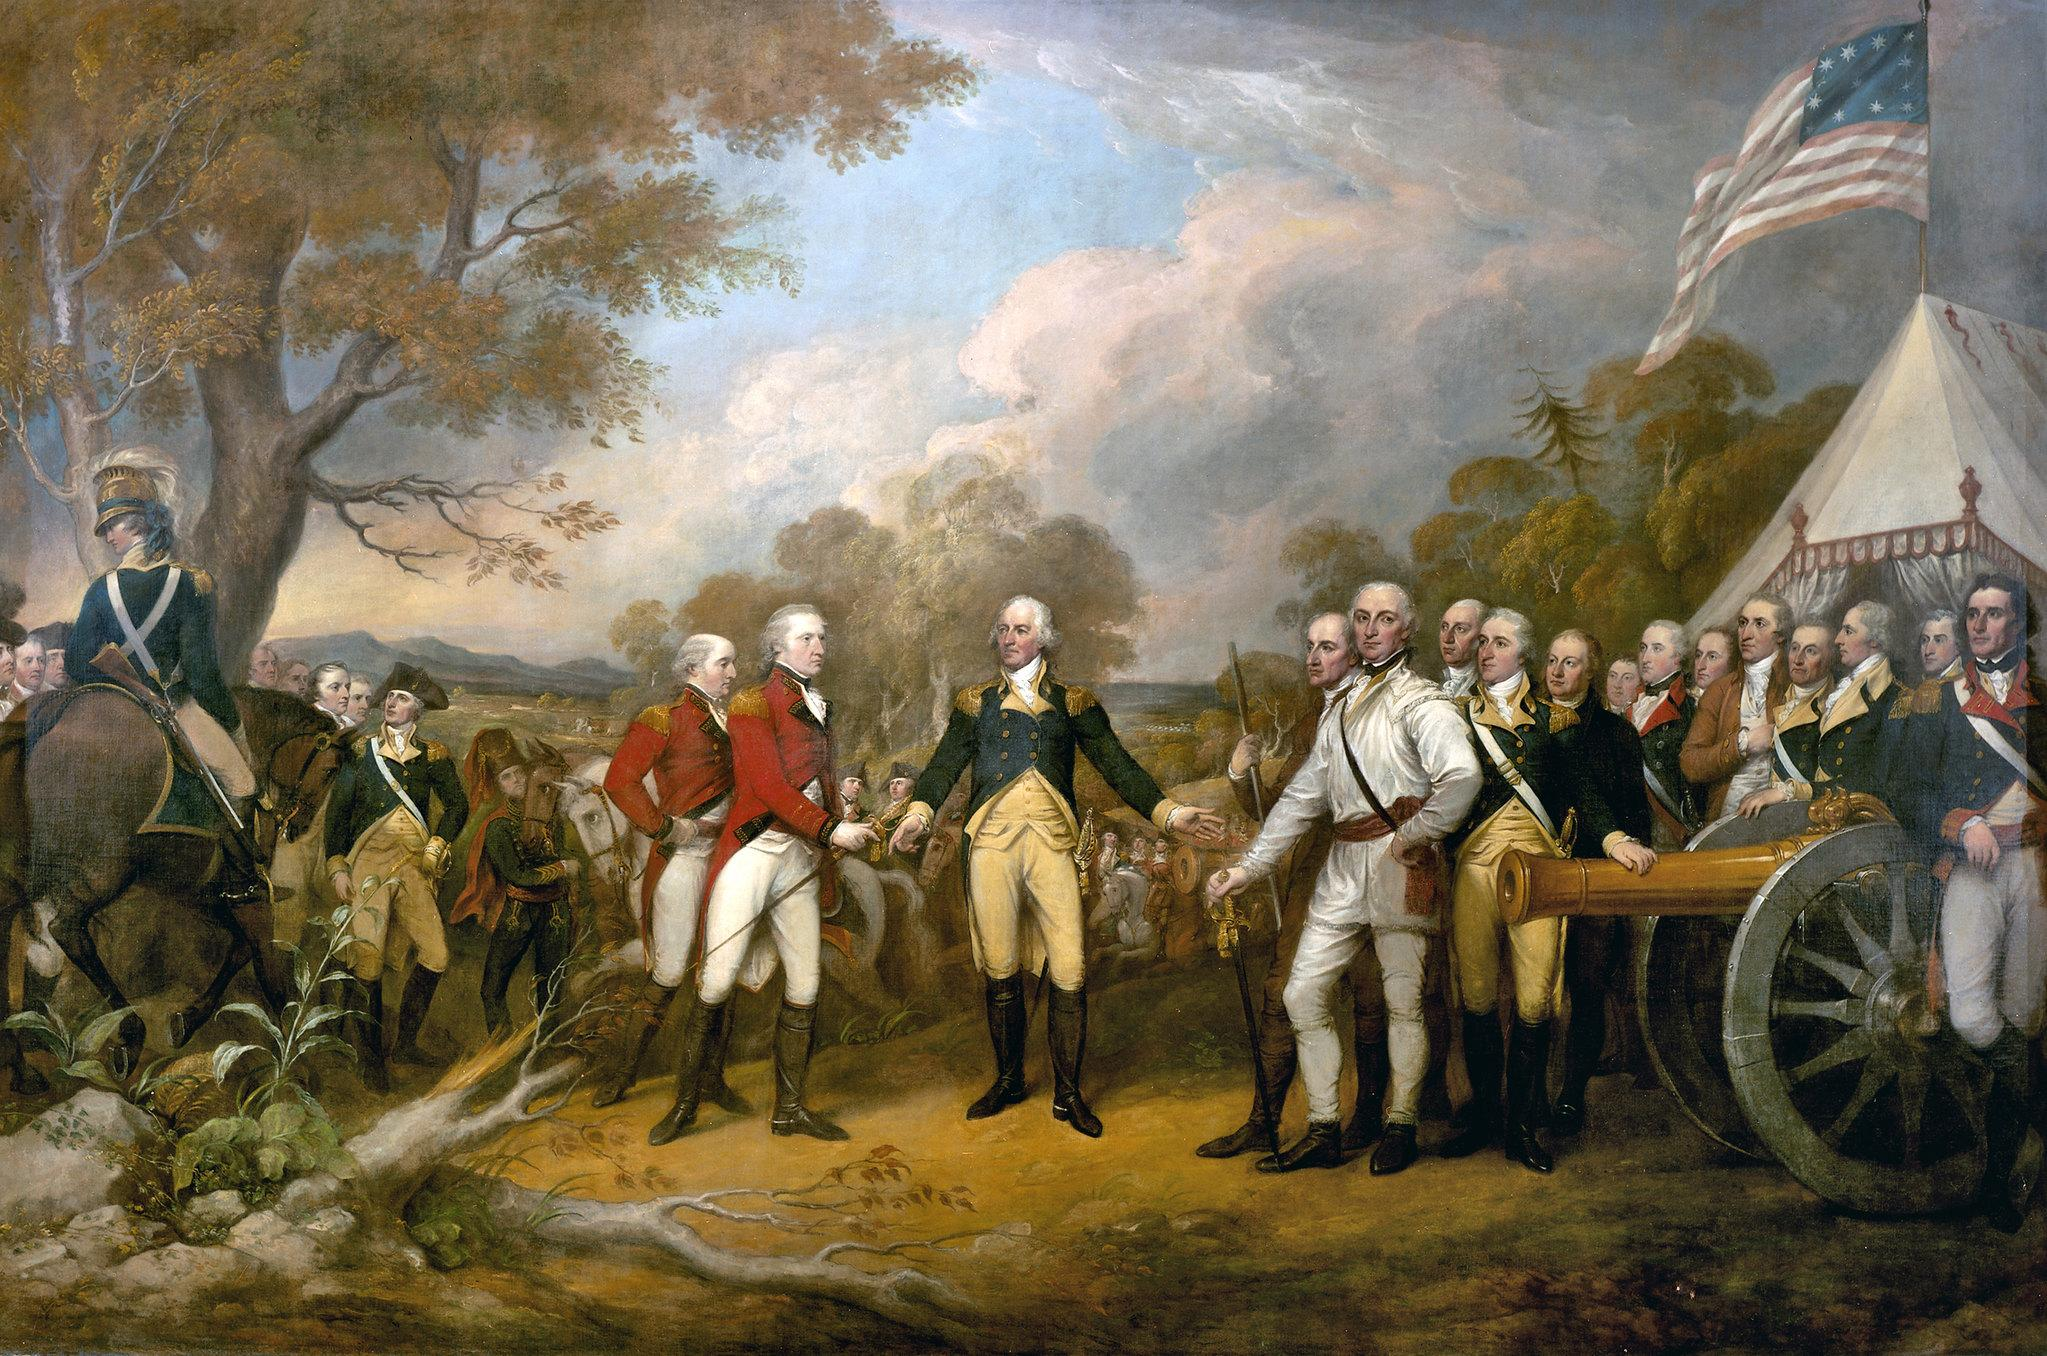 Surrender of General Burgoyne, by John Trumbull, c. 1821. Courtesy of the Architect of the Capitol.  Schuyler can be seen on the right side of the portrait, dressed in brown.